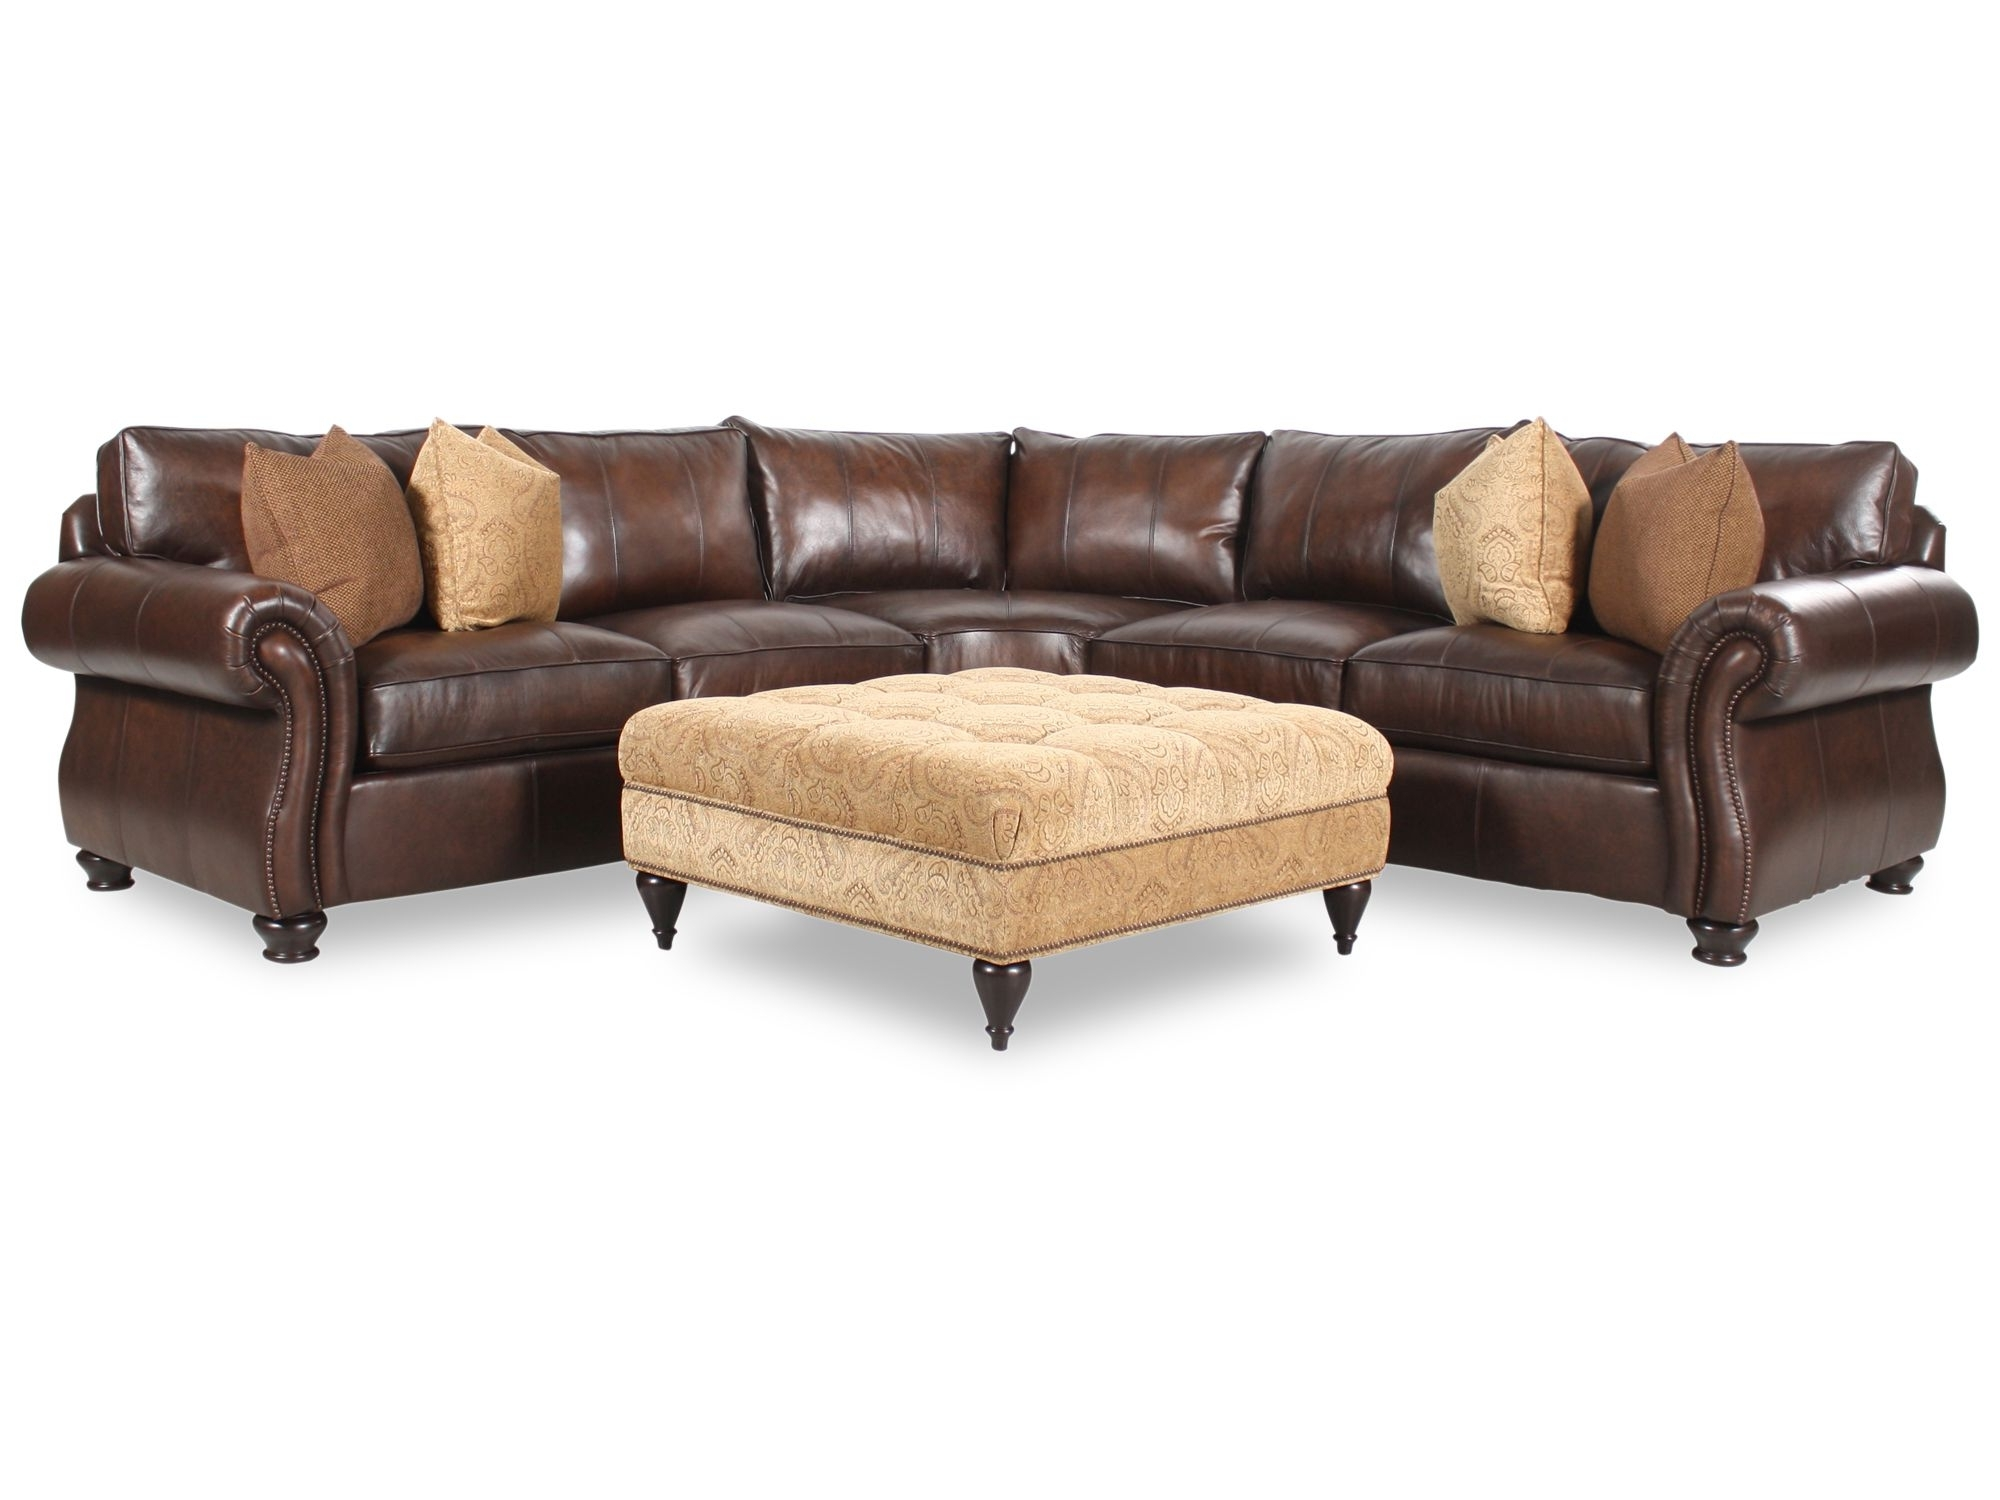 Leather Sectional Sofas With Ottoman Regarding 2019 Bernhardt Van Gogh Two Piece Leather Sectional With Square Fabric (View 10 of 20)